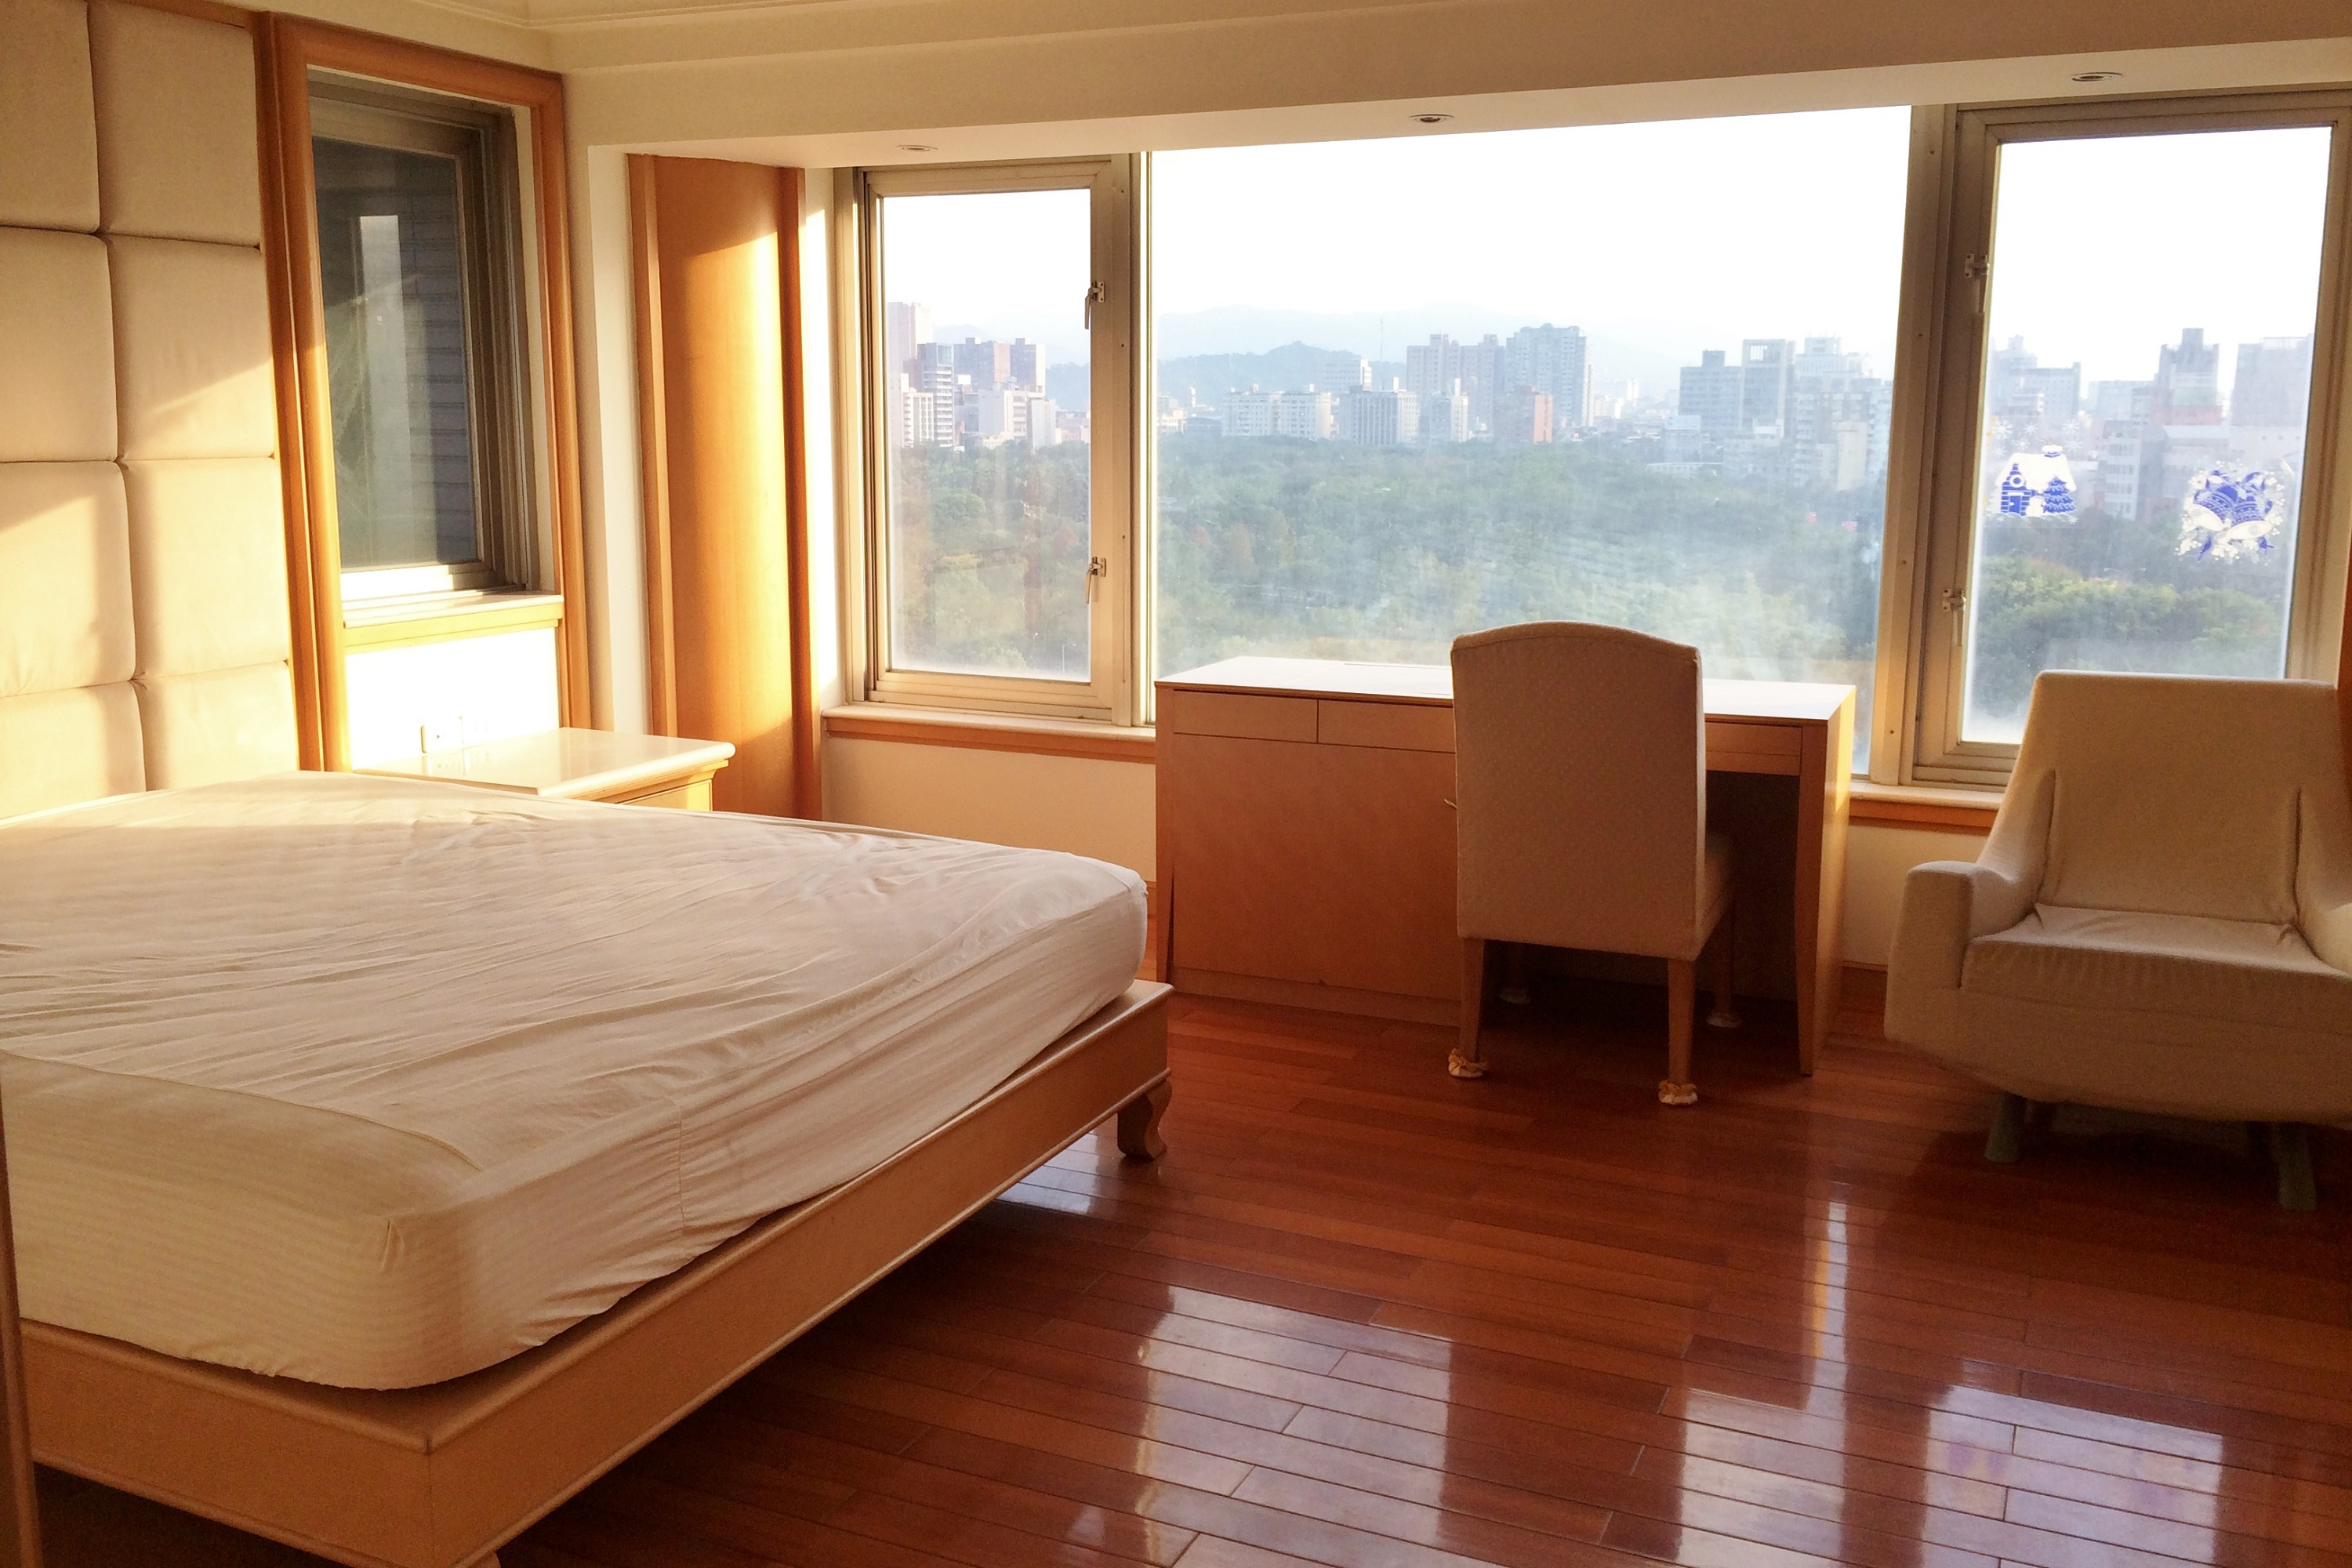 Condominium for Sale at Eiffel Court Sec. 3, Xinyi Rd., Da'an Dist. Taipei City, 106 Taiwan